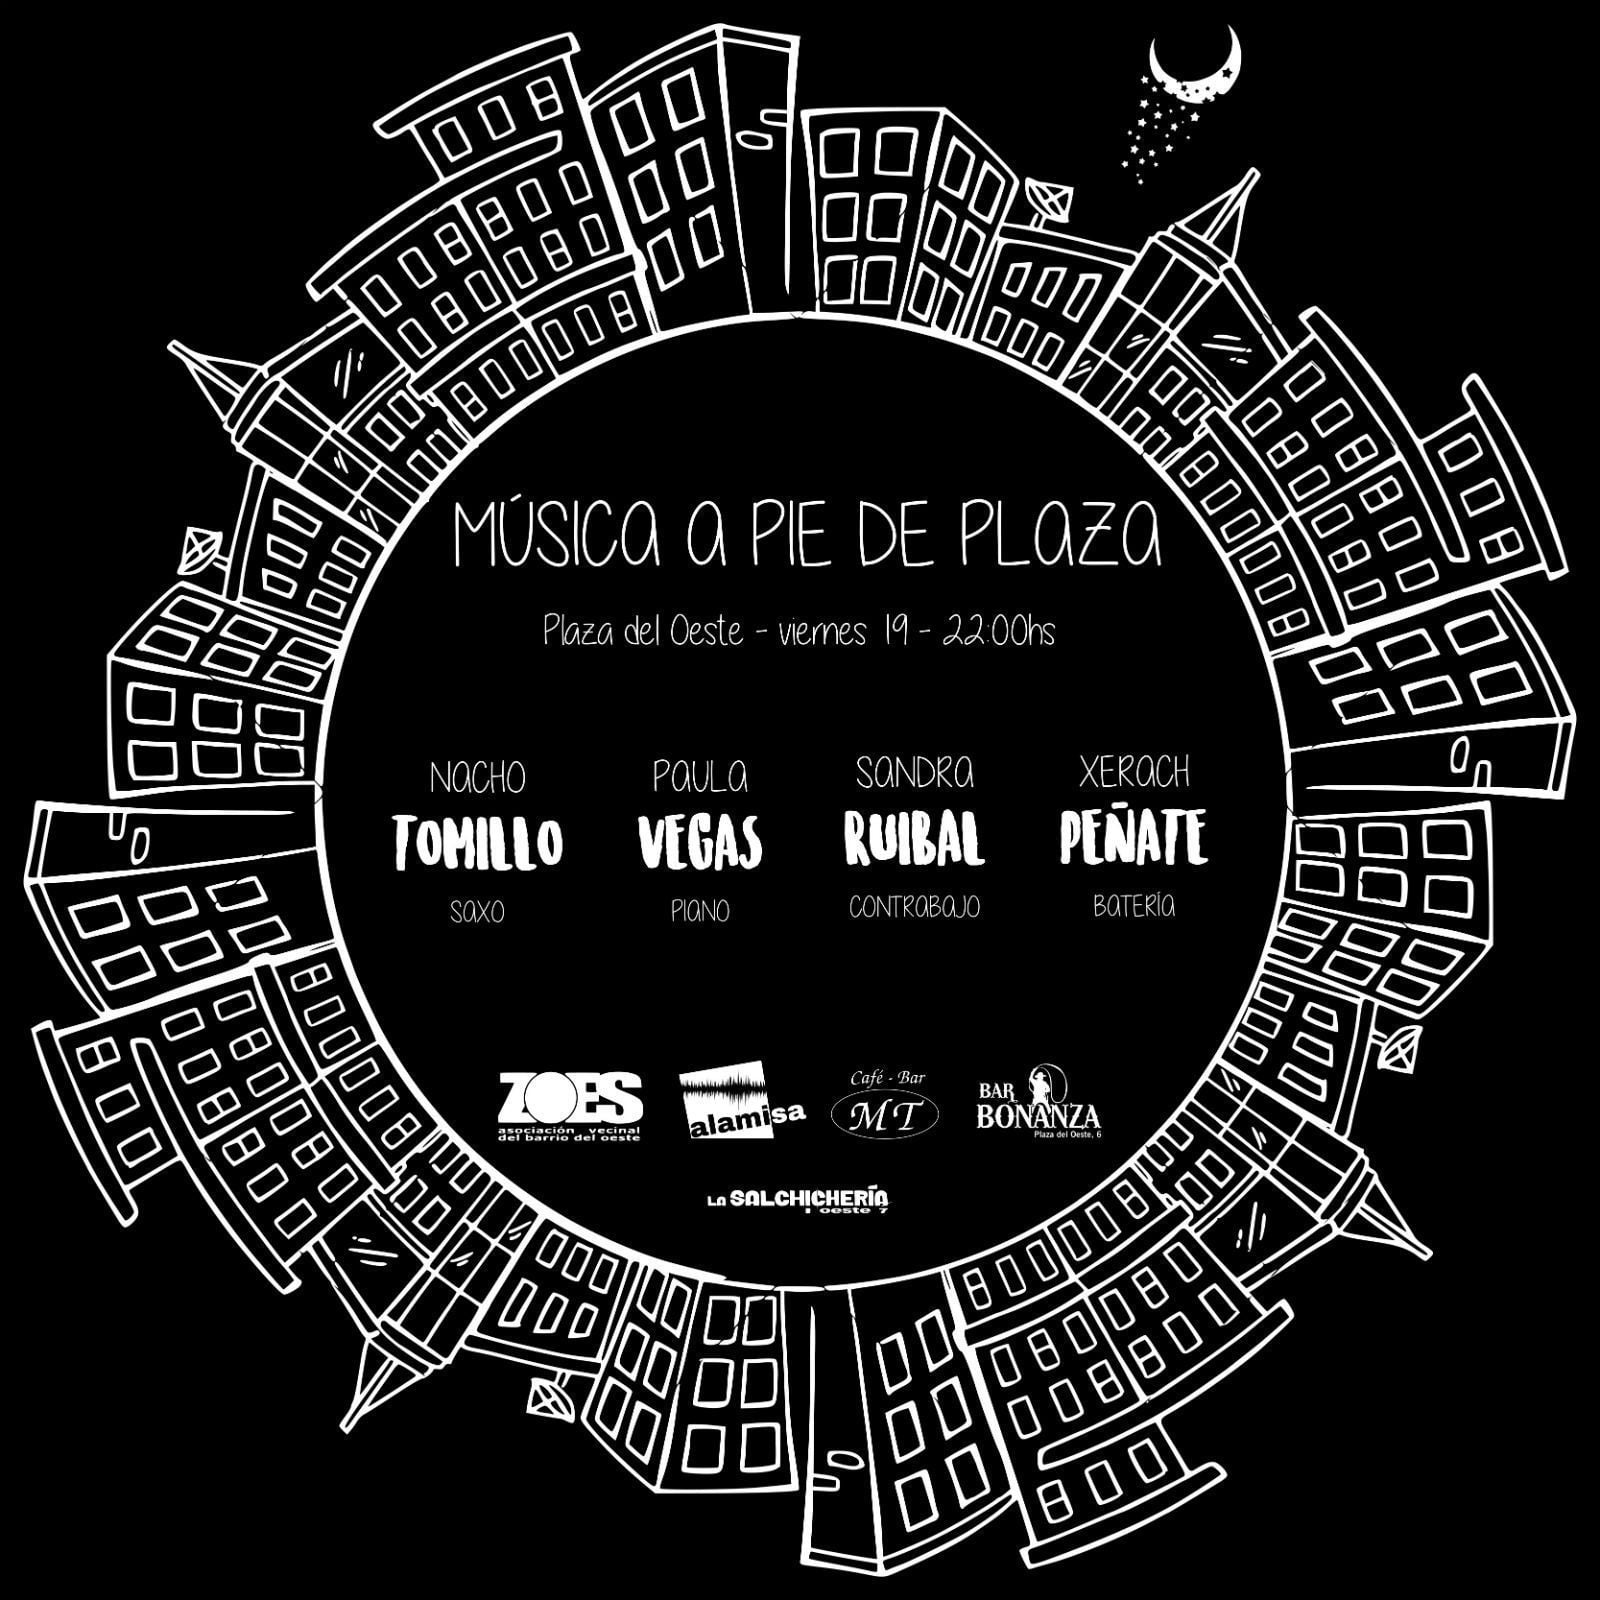 MUSICA-PIE-PLAZA-5TO